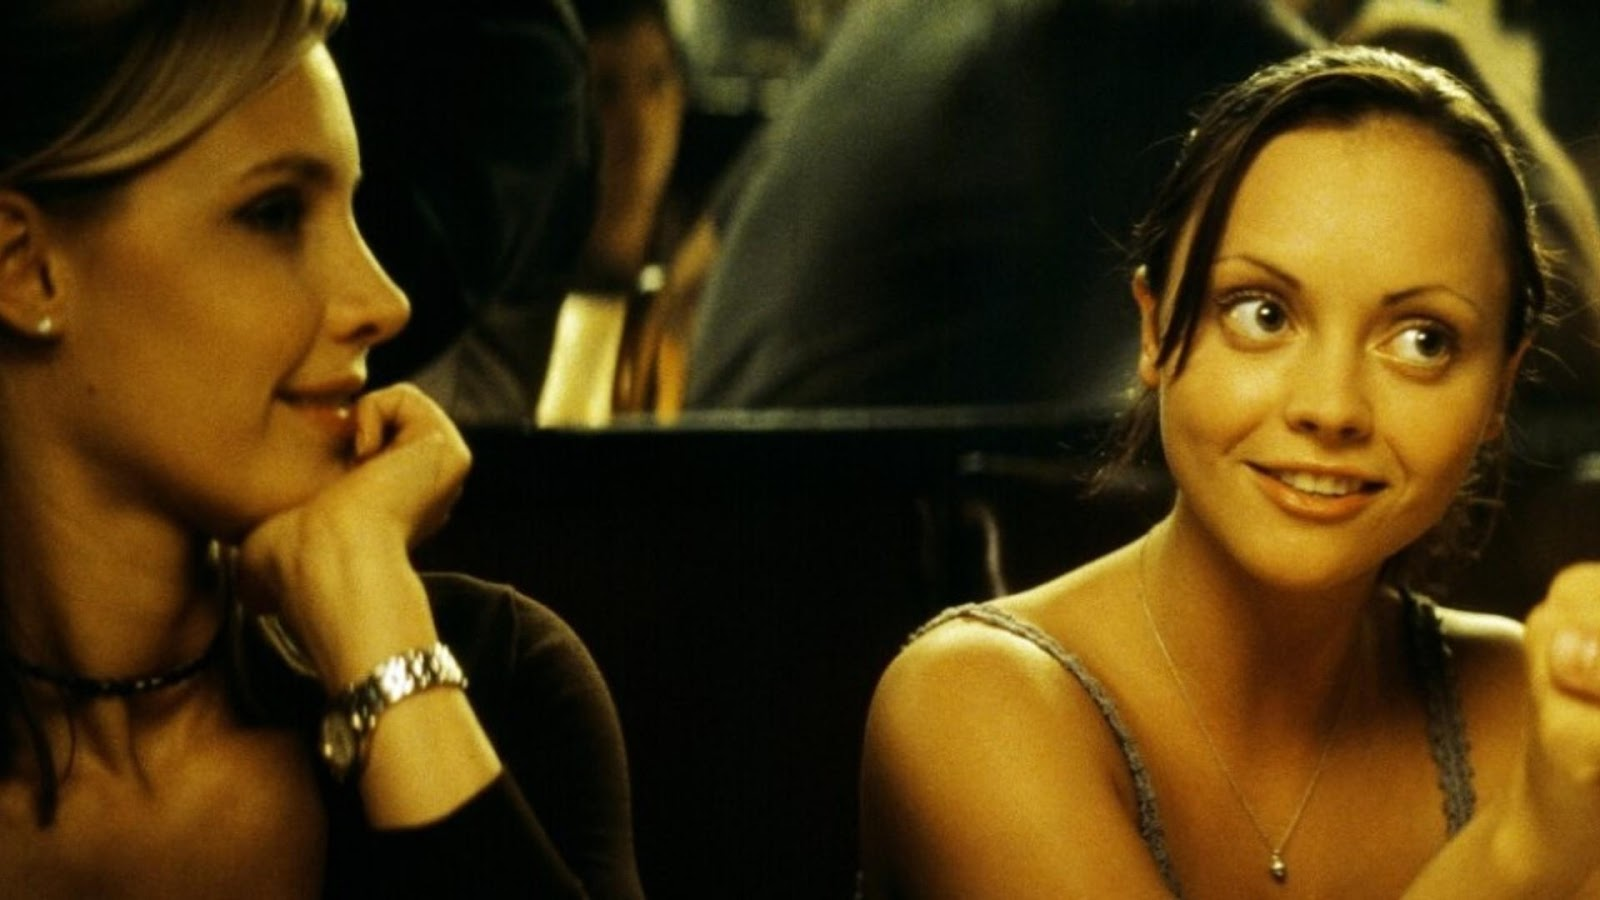 Screenshot from Anything Else (2003)